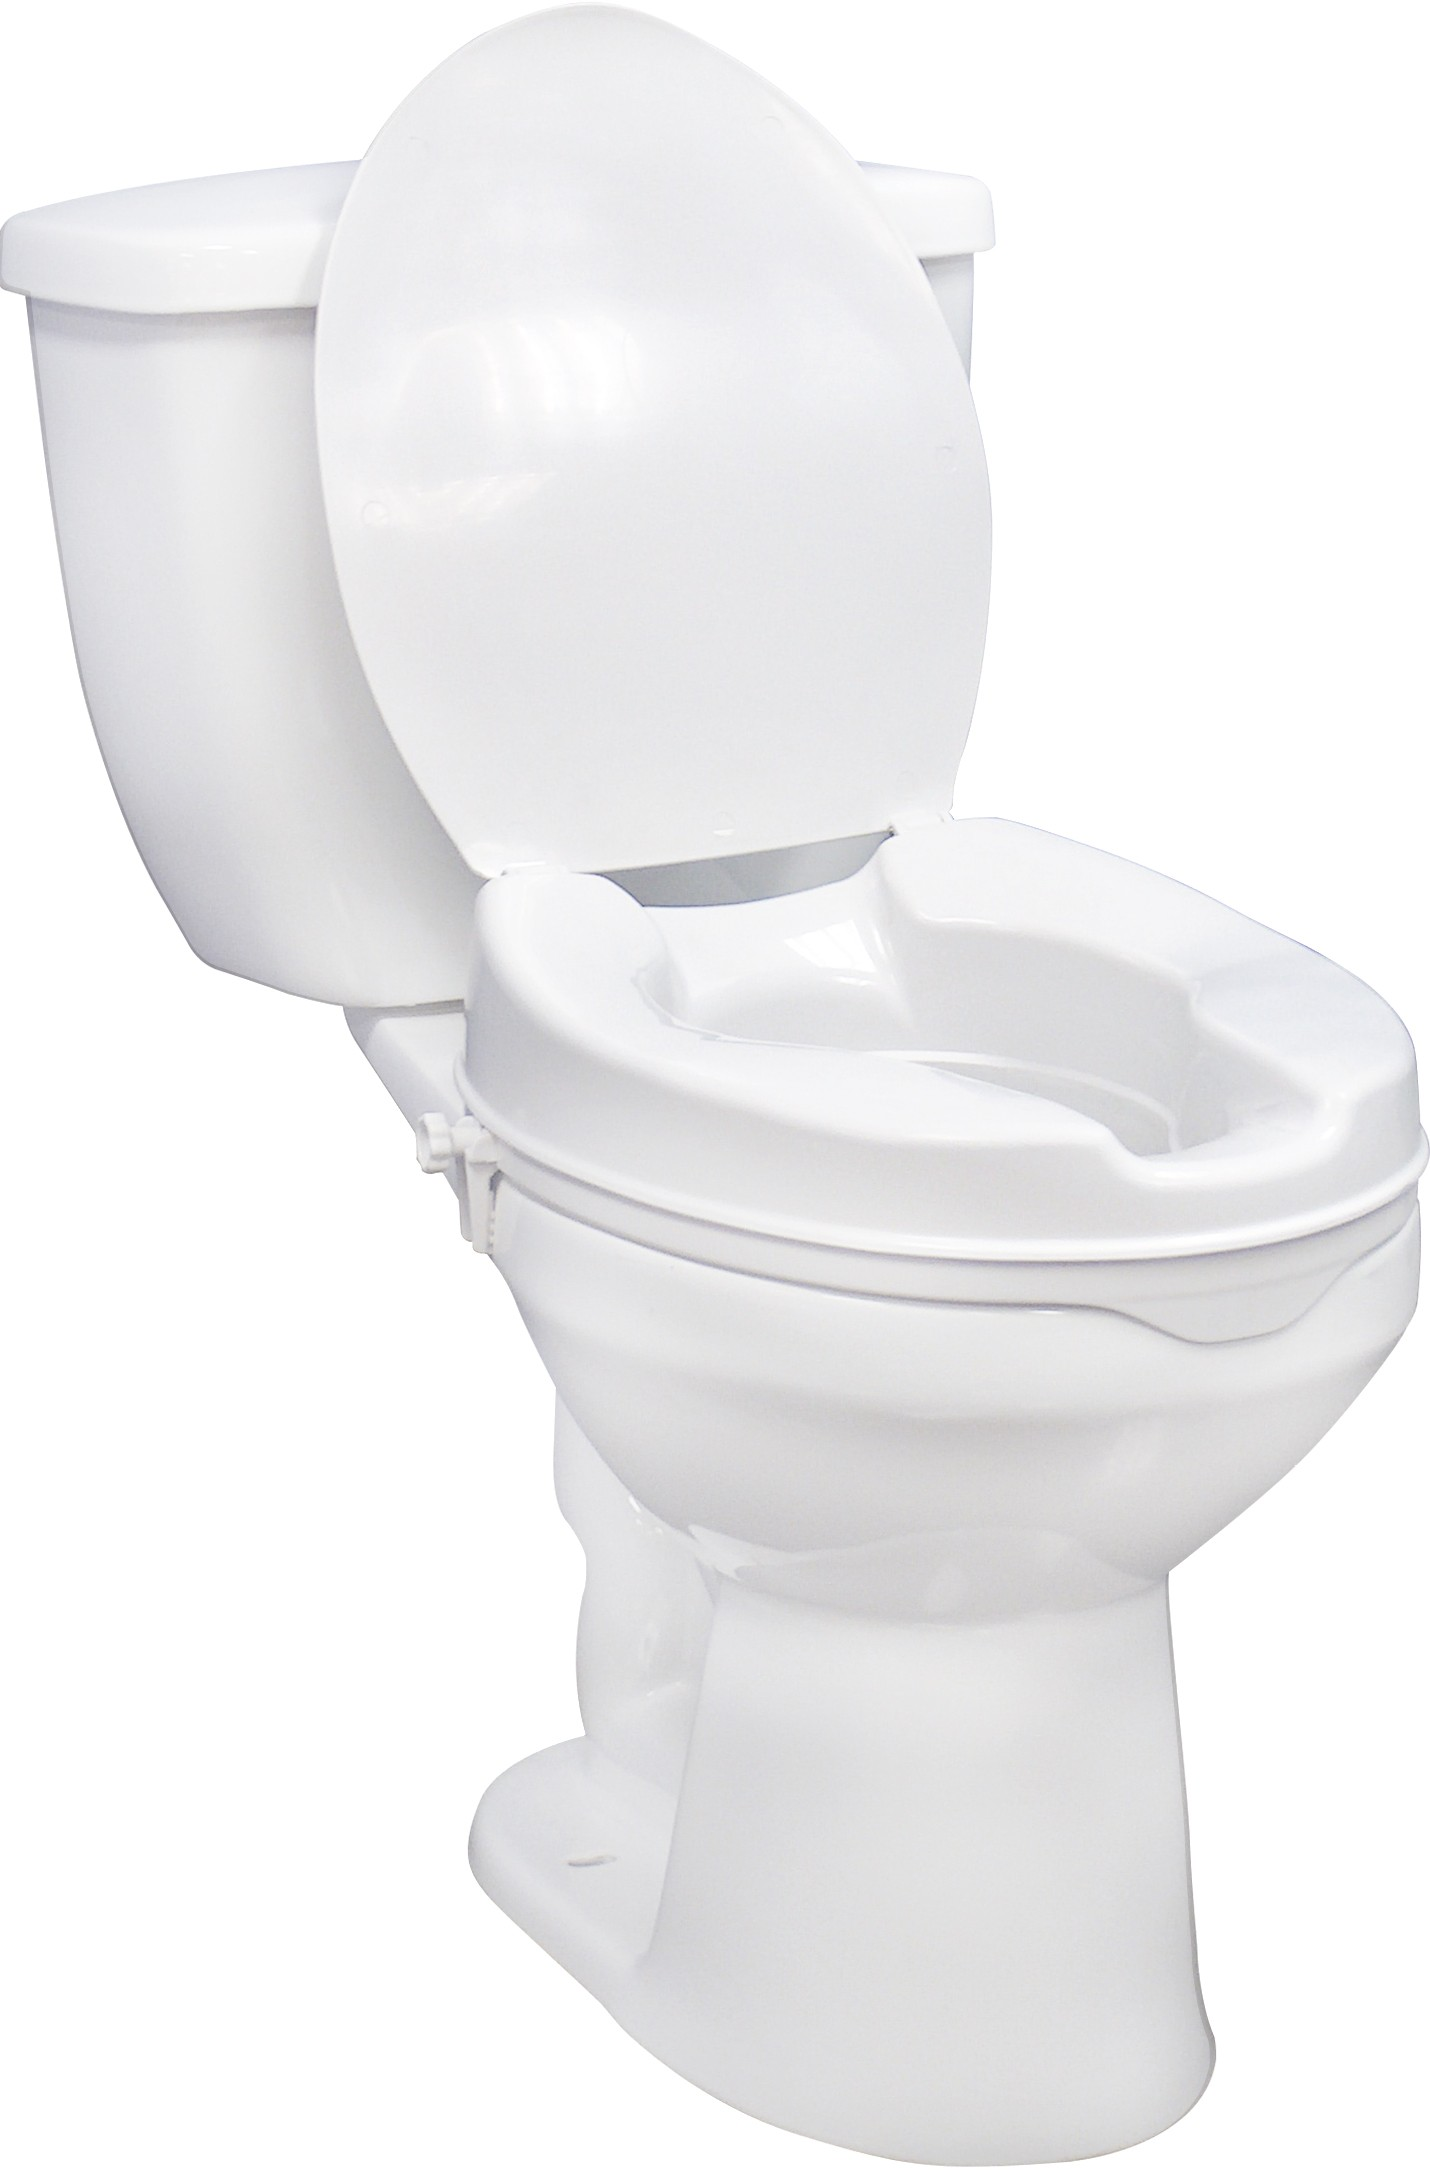 Superb 4 Raised Toilet Seat W Lid Gmtry Best Dining Table And Chair Ideas Images Gmtryco